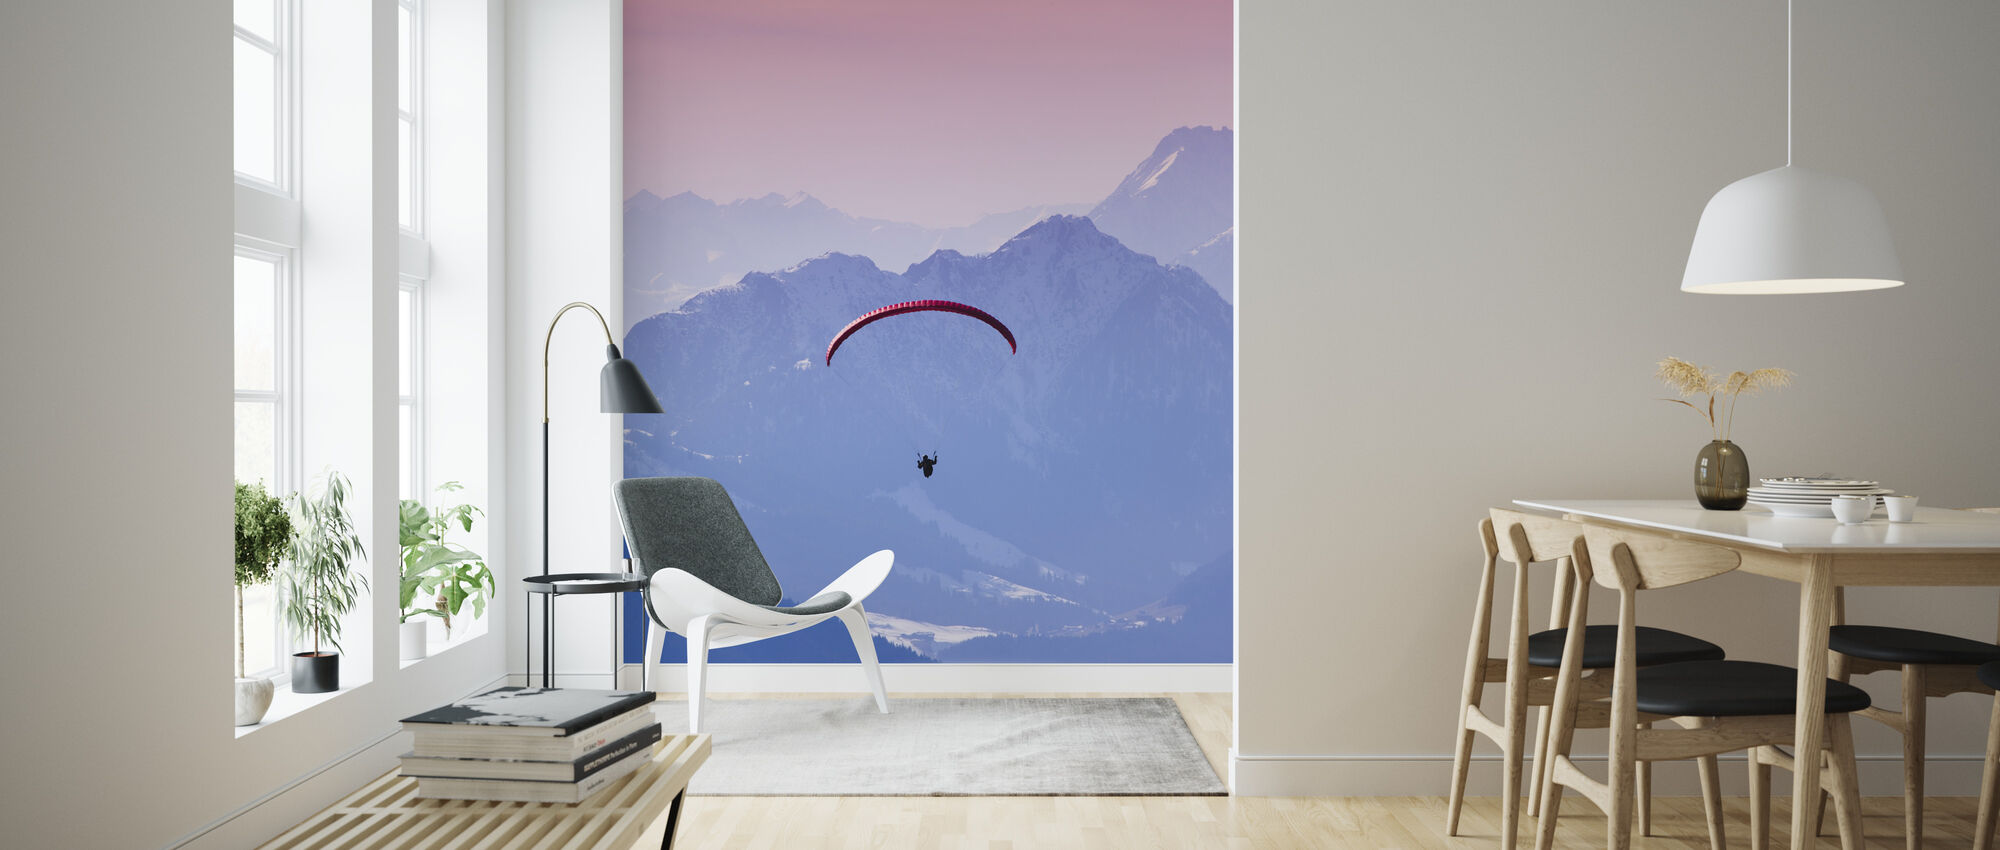 Kite in Hopfgarten, Austria - Wallpaper - Living Room